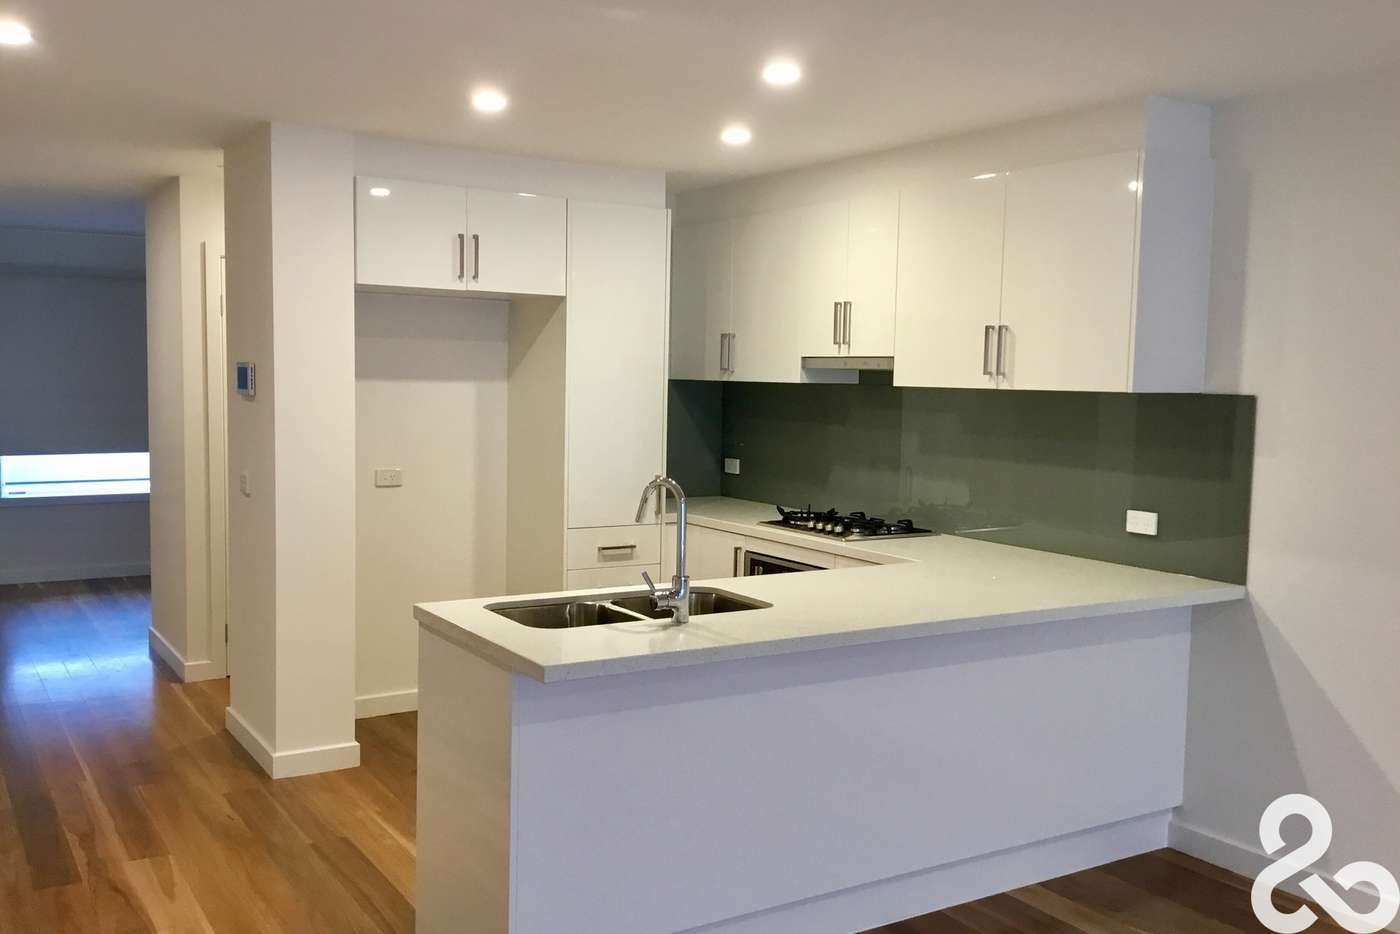 Main view of Homely townhouse listing, 114B Beaconsfield Parade, Northcote VIC 3070